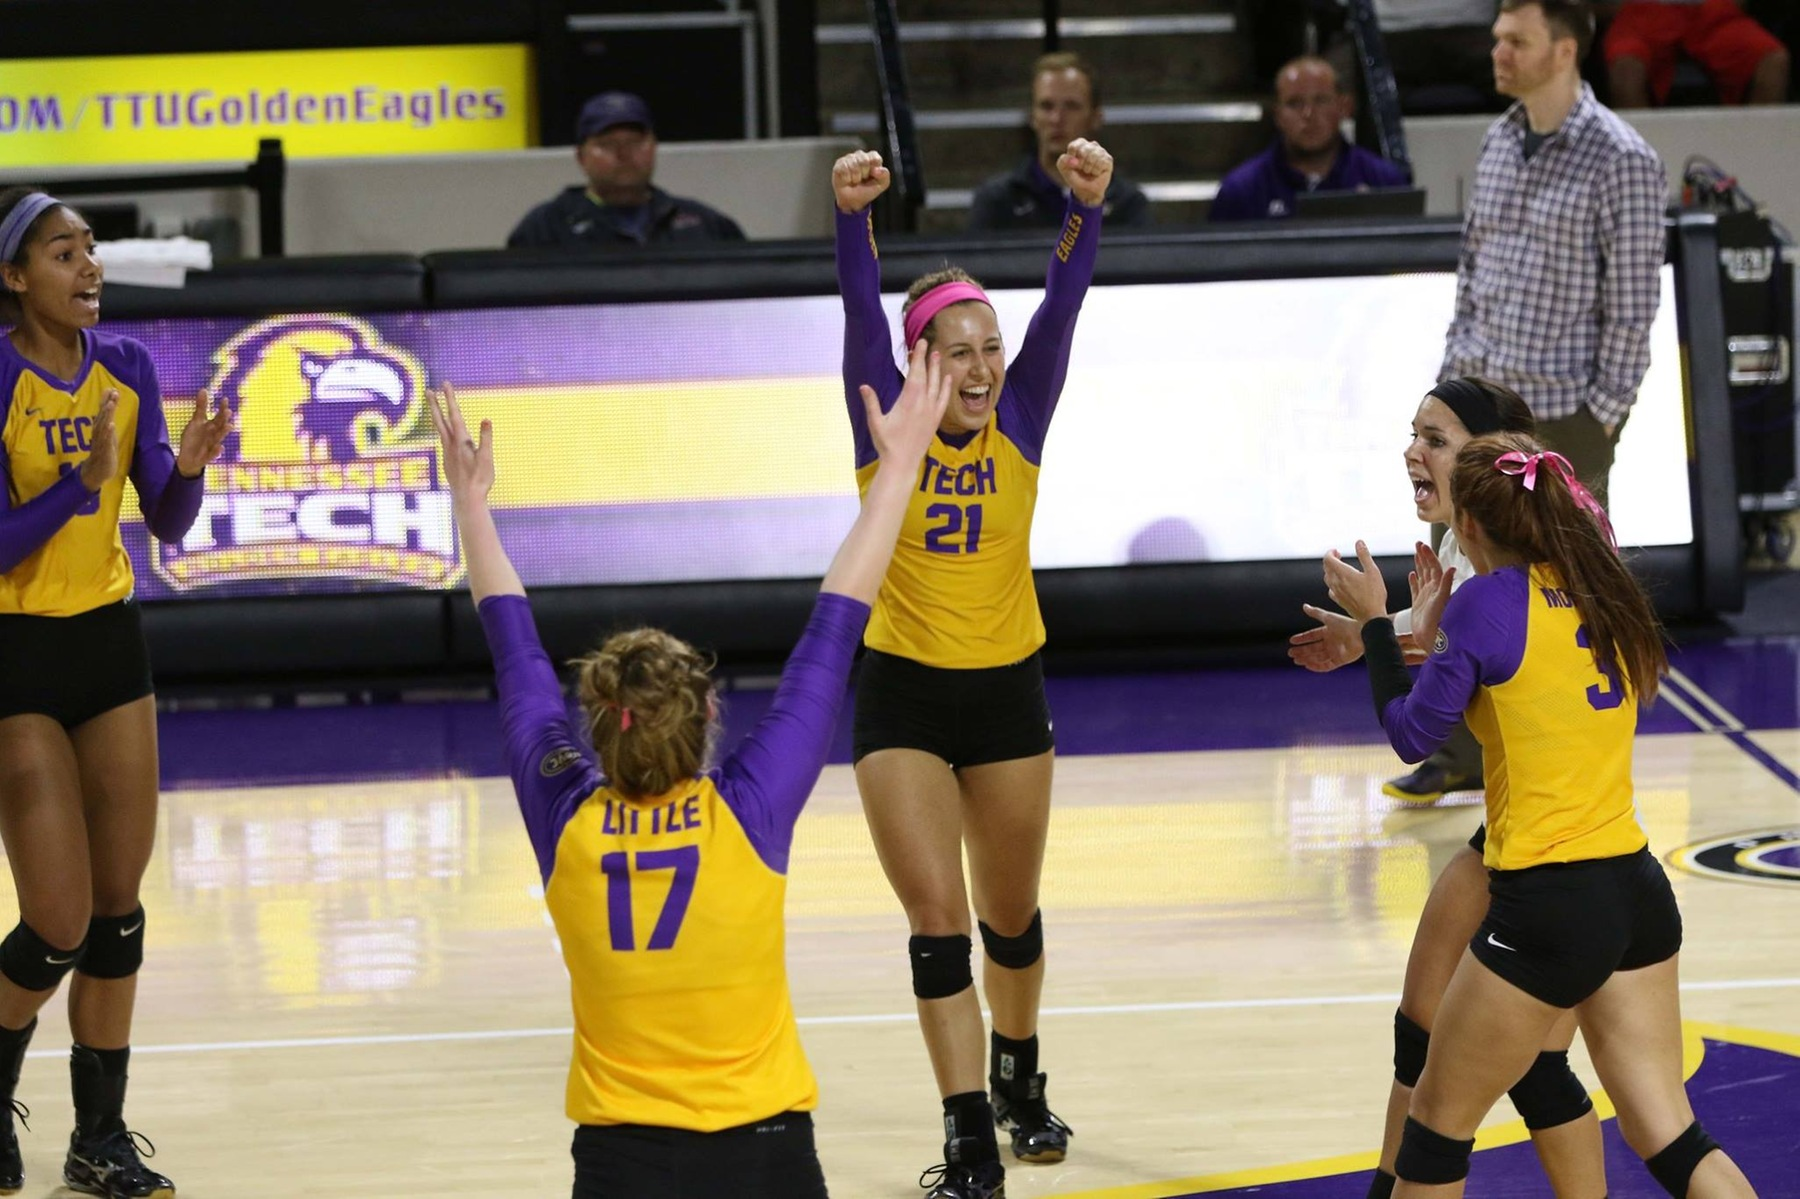 Volleyball ends nonconference schedule at Toledo's Blue/Gold Invitational